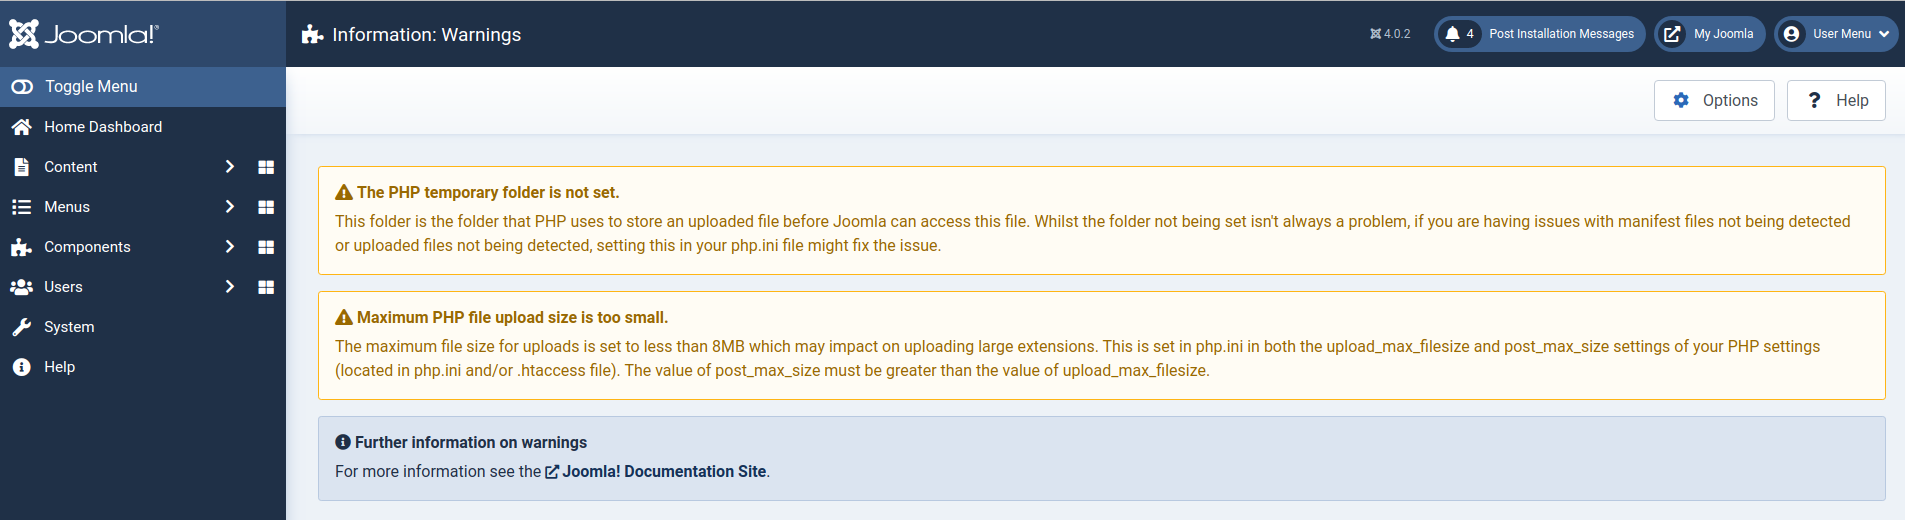 Small PHP Maximum Post Size Warning Gone